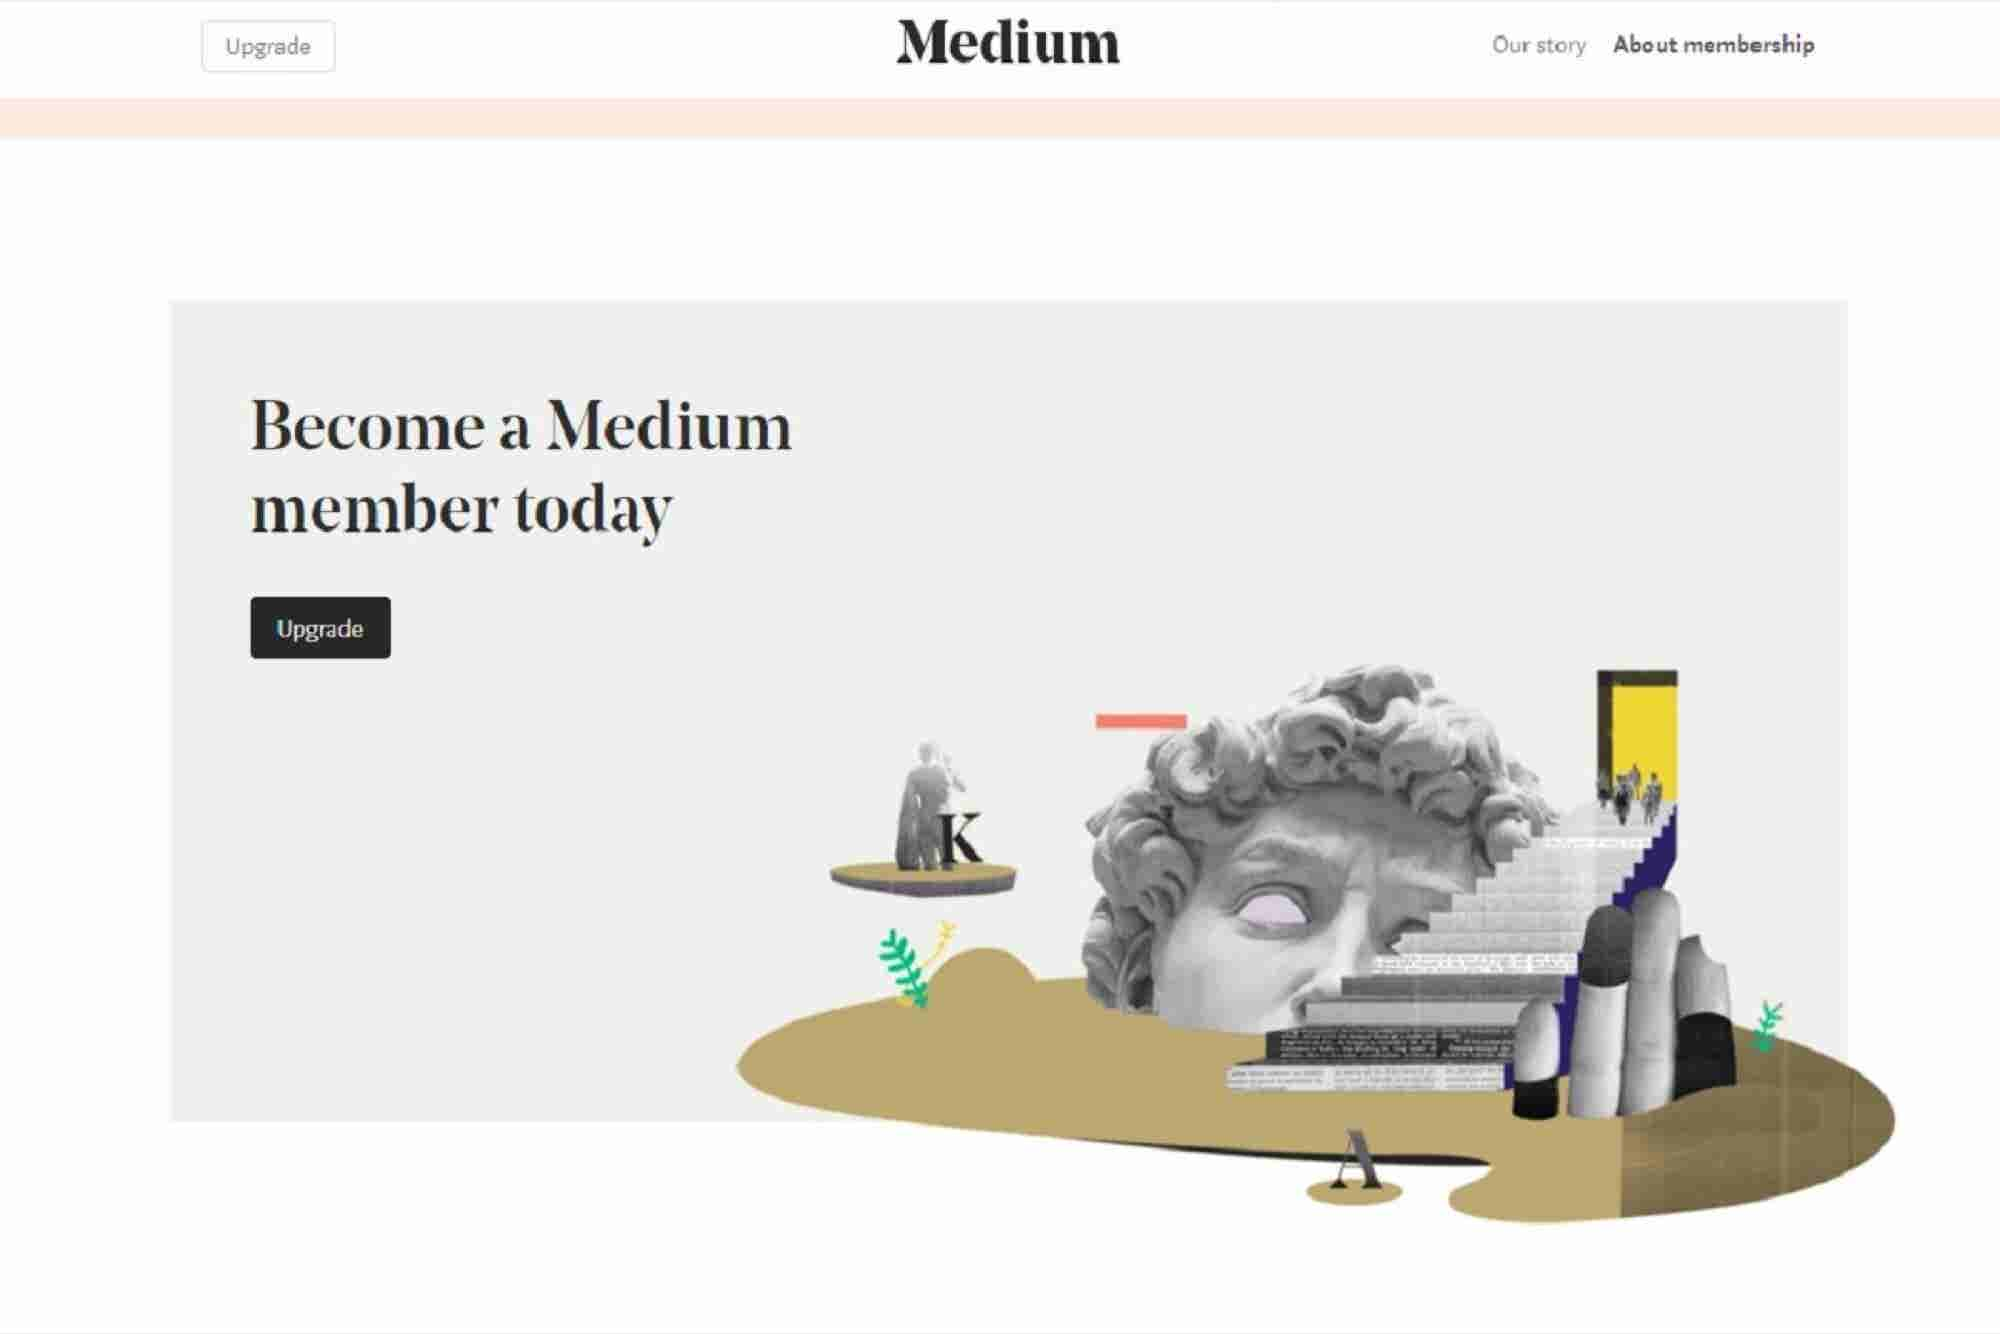 Move Over Traditional Marketing, It's Time to Blog on Medium